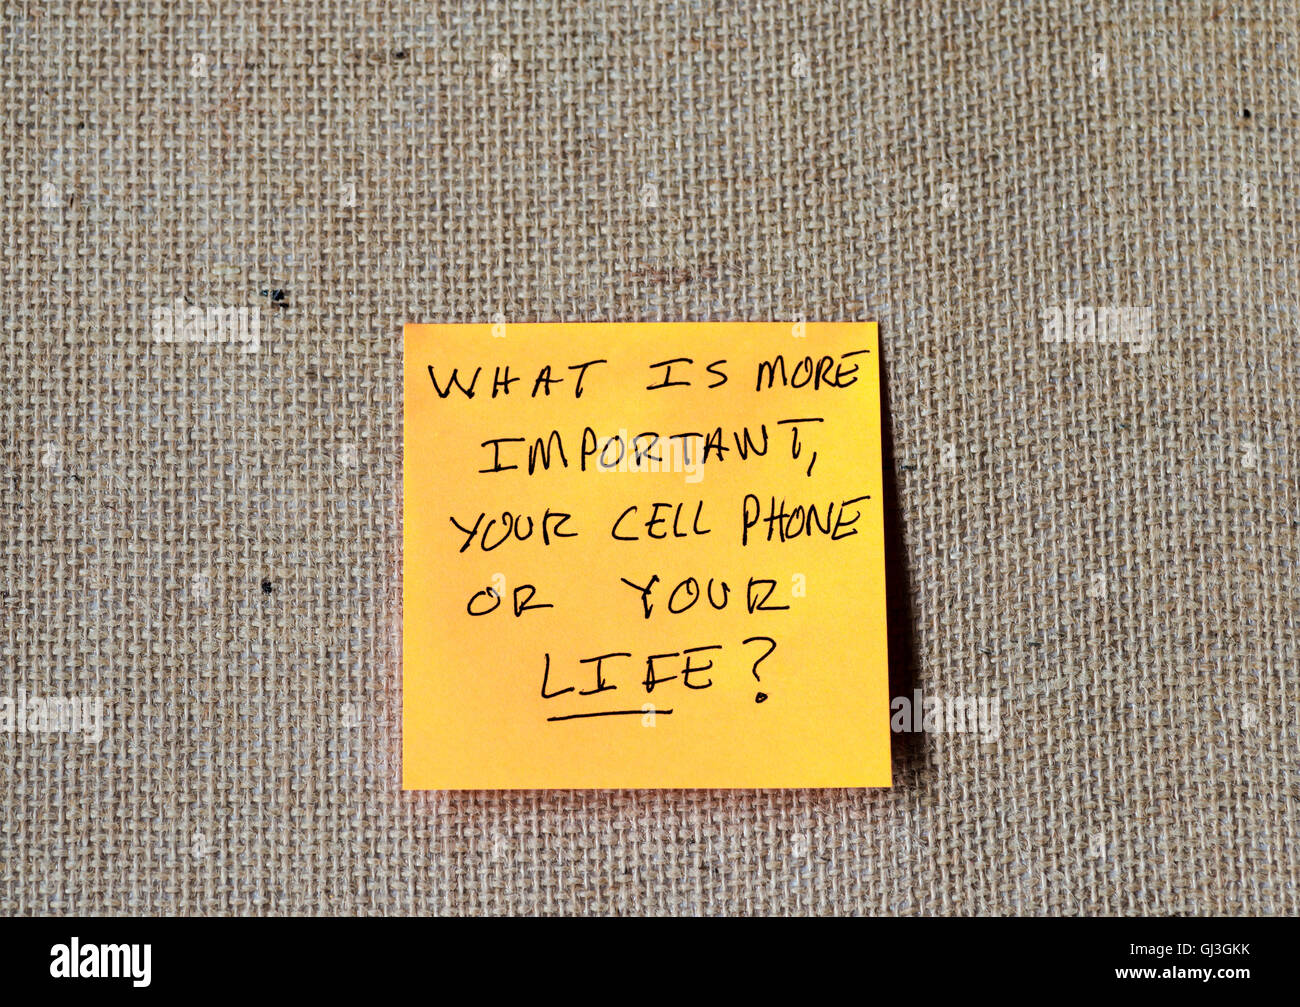 phrase 'what is more important, your cell phone or your life?' written on sticky notes - Stock Image